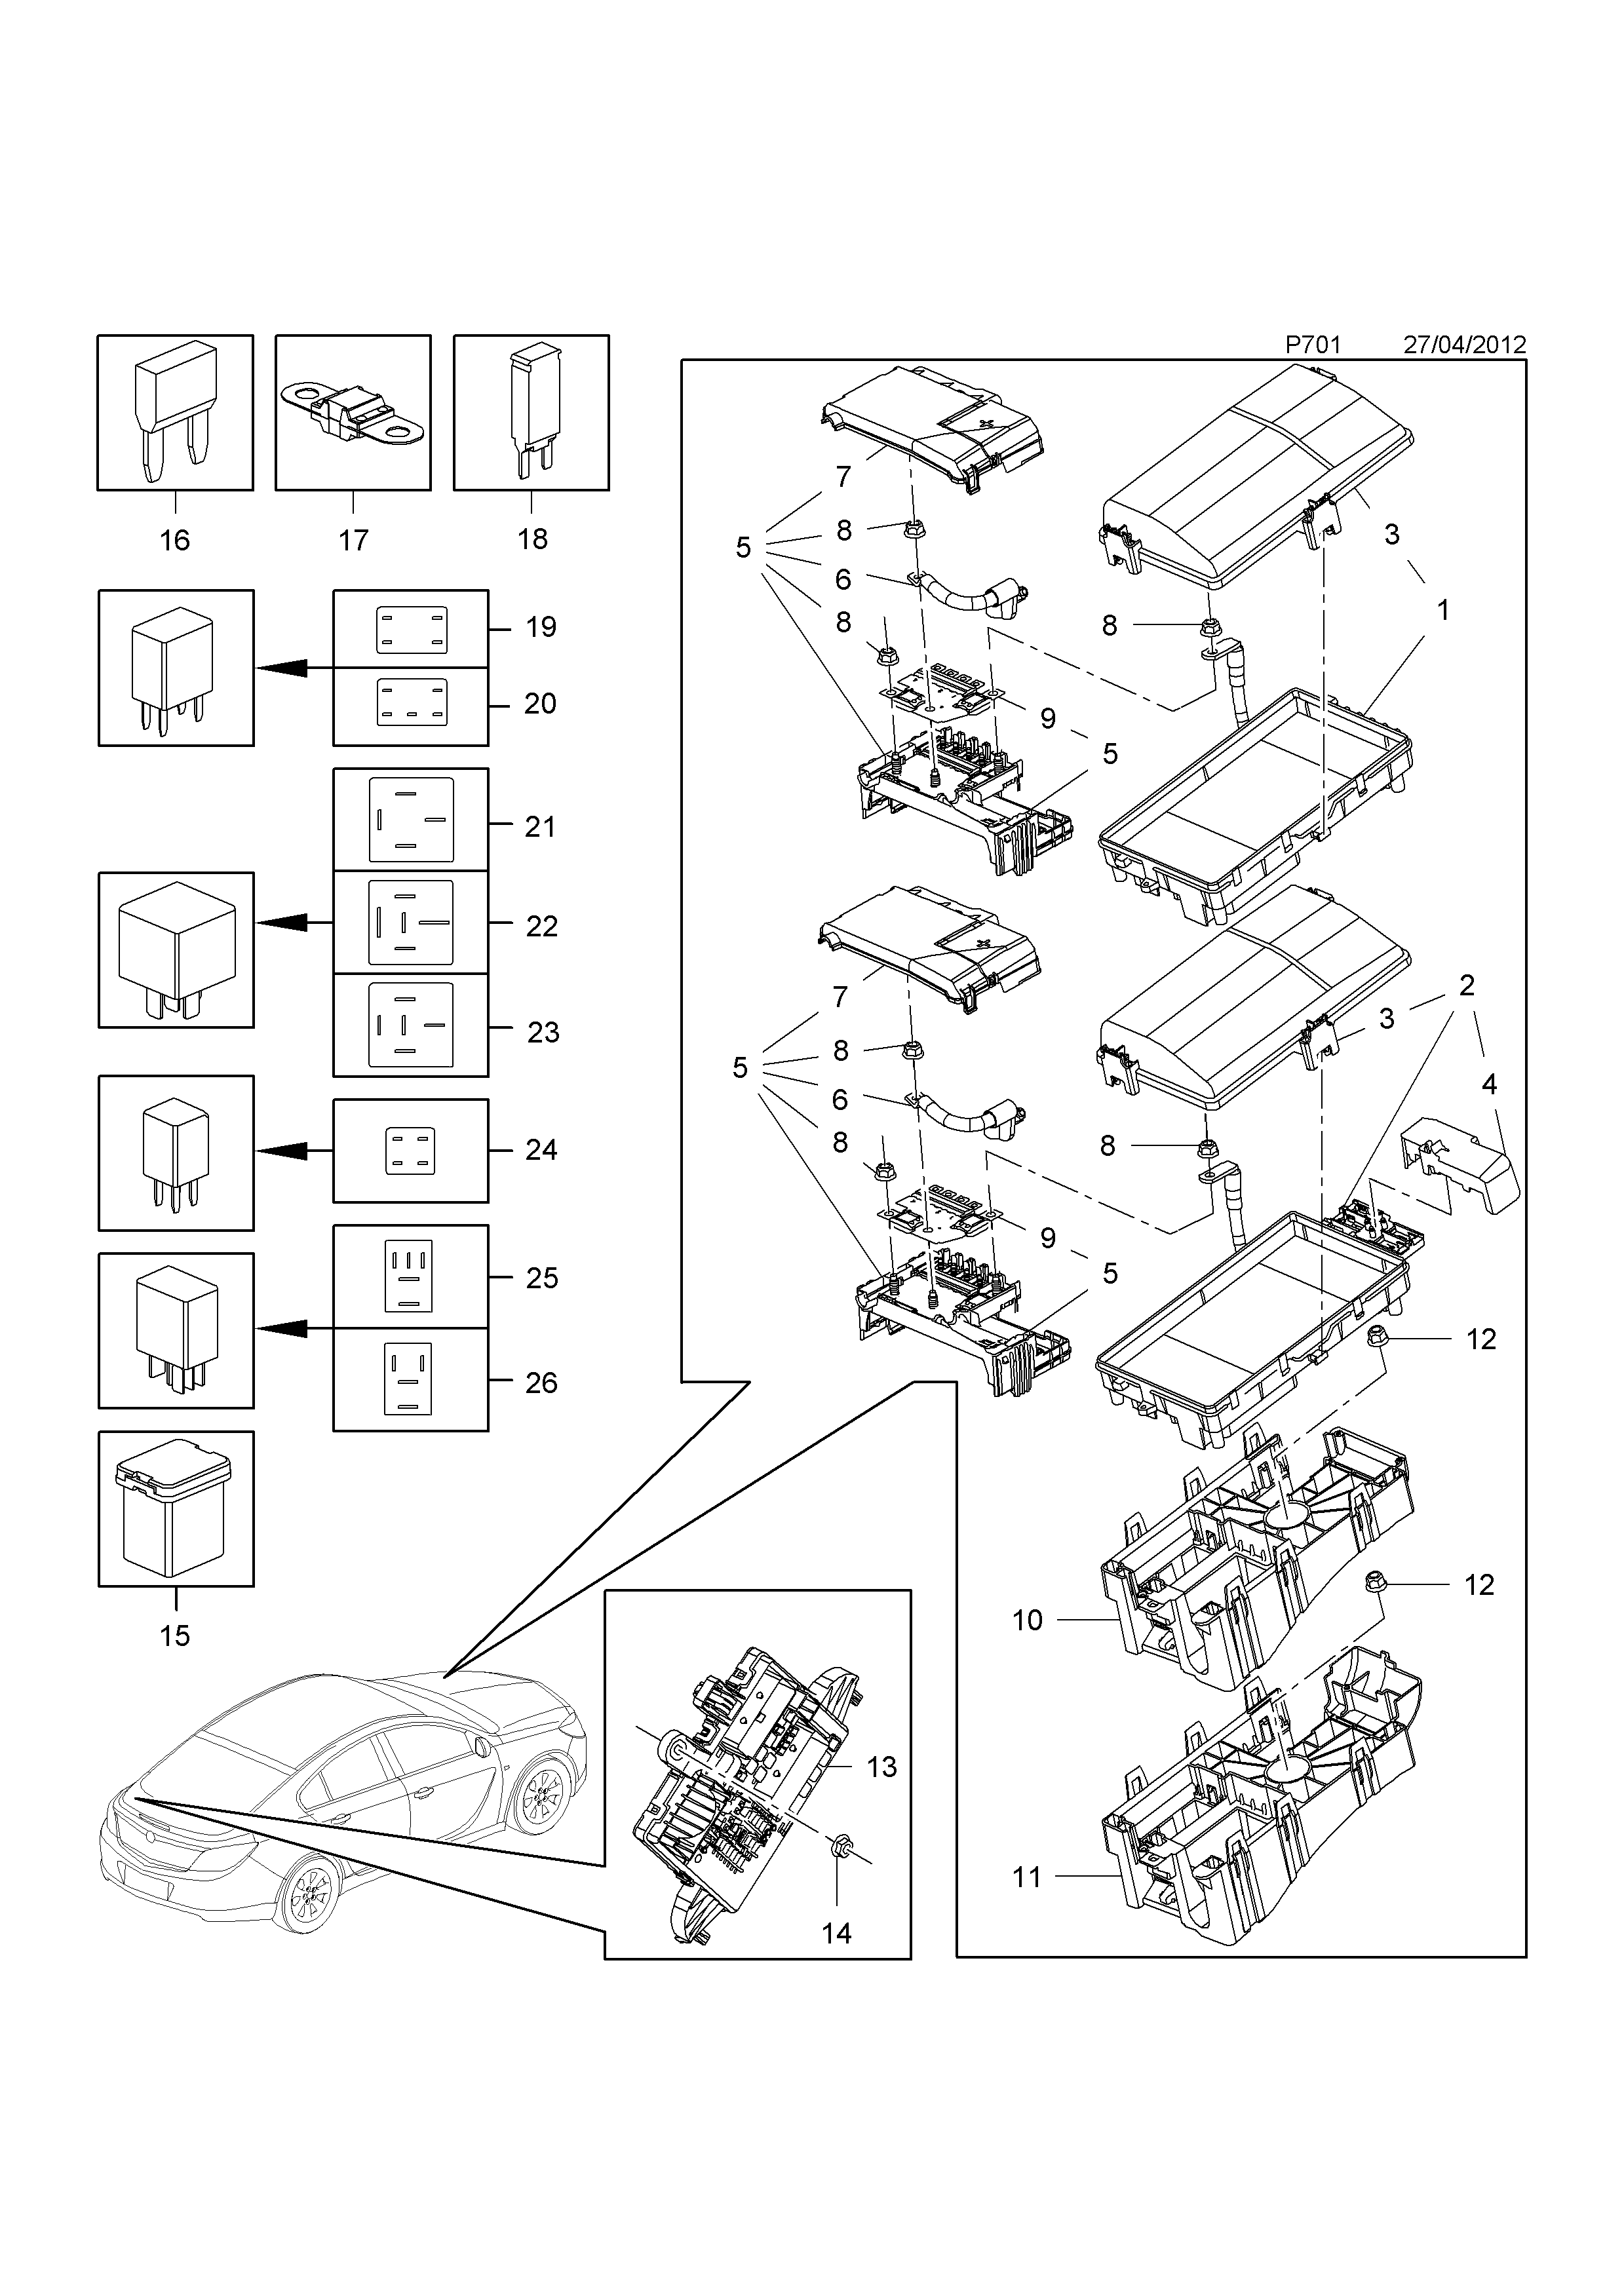 Opel Insignia 2009 P Electrical 10 Fuse Boxfuses And Relays A Diagram List Of Parts